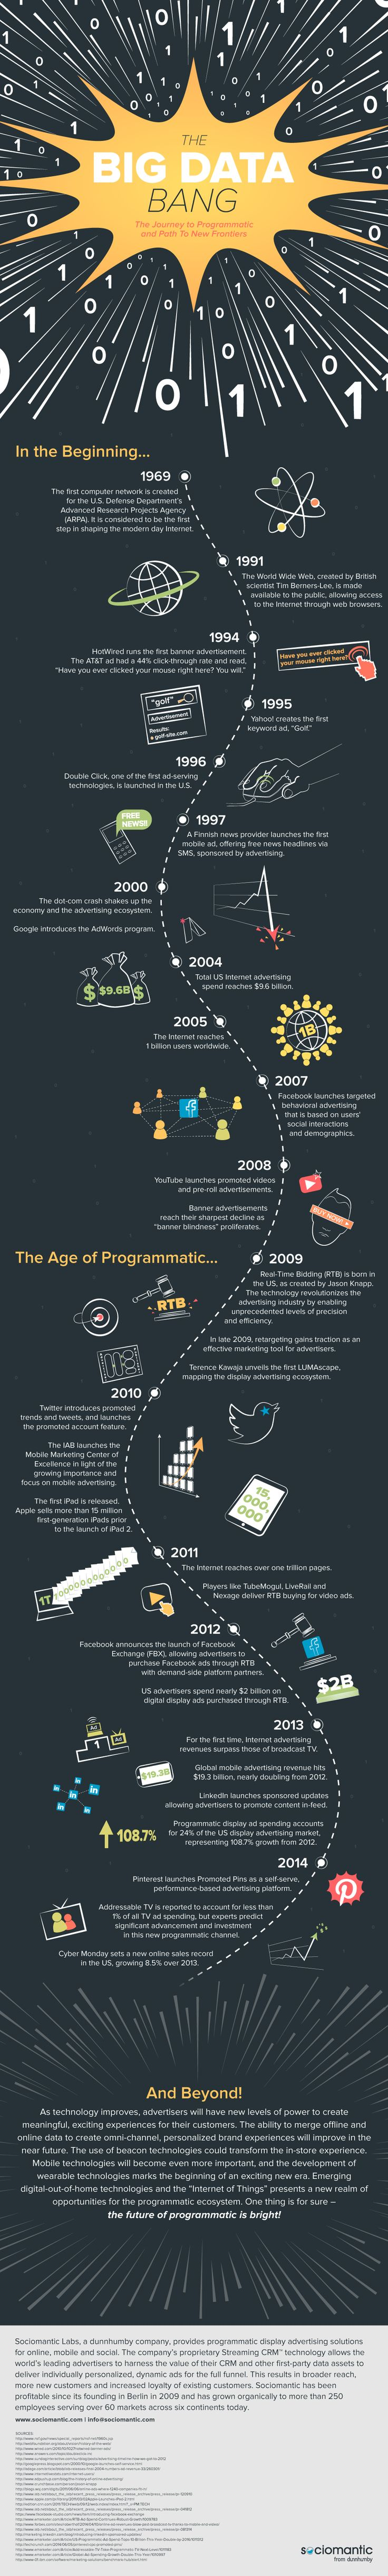 What did the first banner advertisement say? How about the first keyword ad? What accelerated the path to programmatic? Find out in the The Big Data Bang, a look at the evolution of programmatic: https://www.sociomantic.com/blog/2014/12/the-big-data-bang/#.VJGYvKTF8vZ.